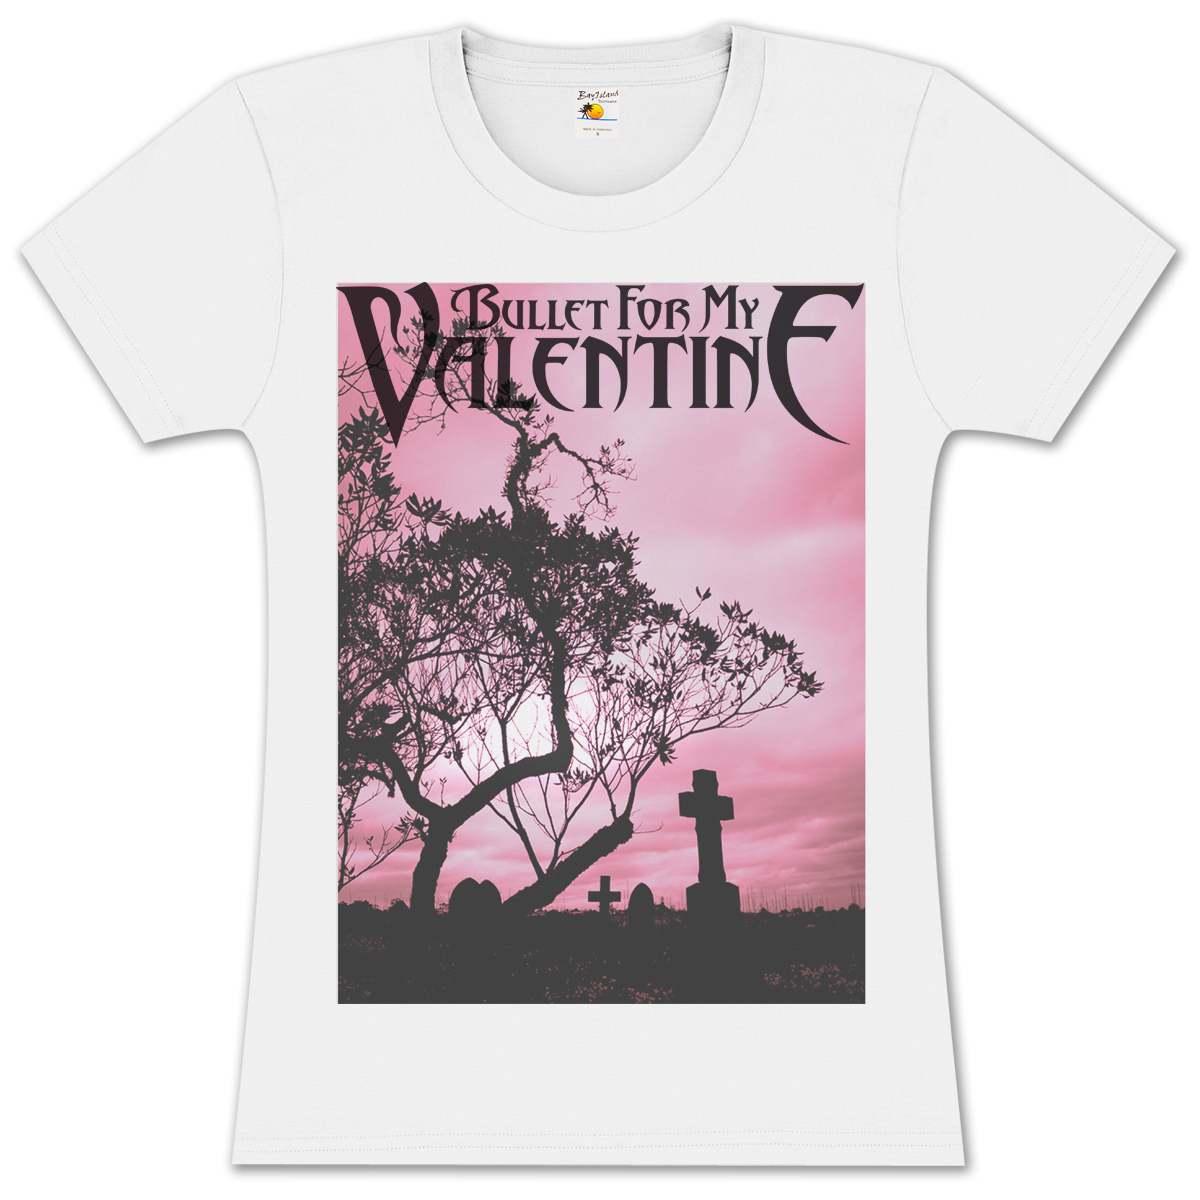 Bullet For My Valentine Silhouette Girlie T-Shirt